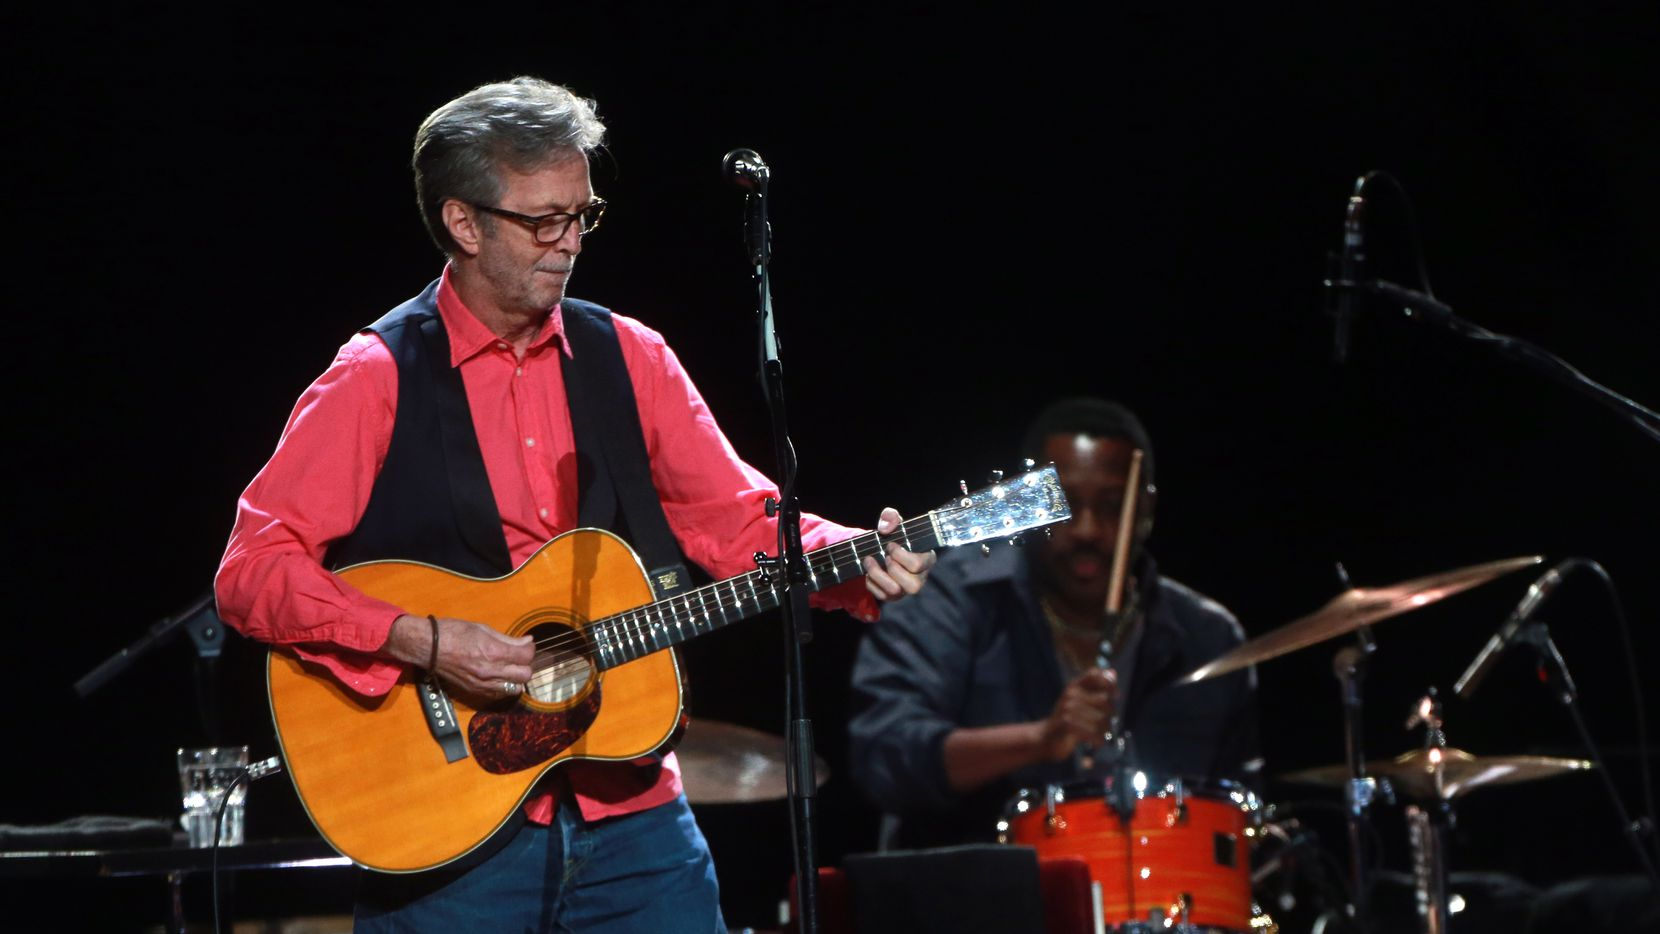 A 2013 file photo shows Eric Clapton performing at American Airlines Center. On Monday, Clapton played his first tour date since the onset of the pandemic at Dickies Arena in Fort Worth.